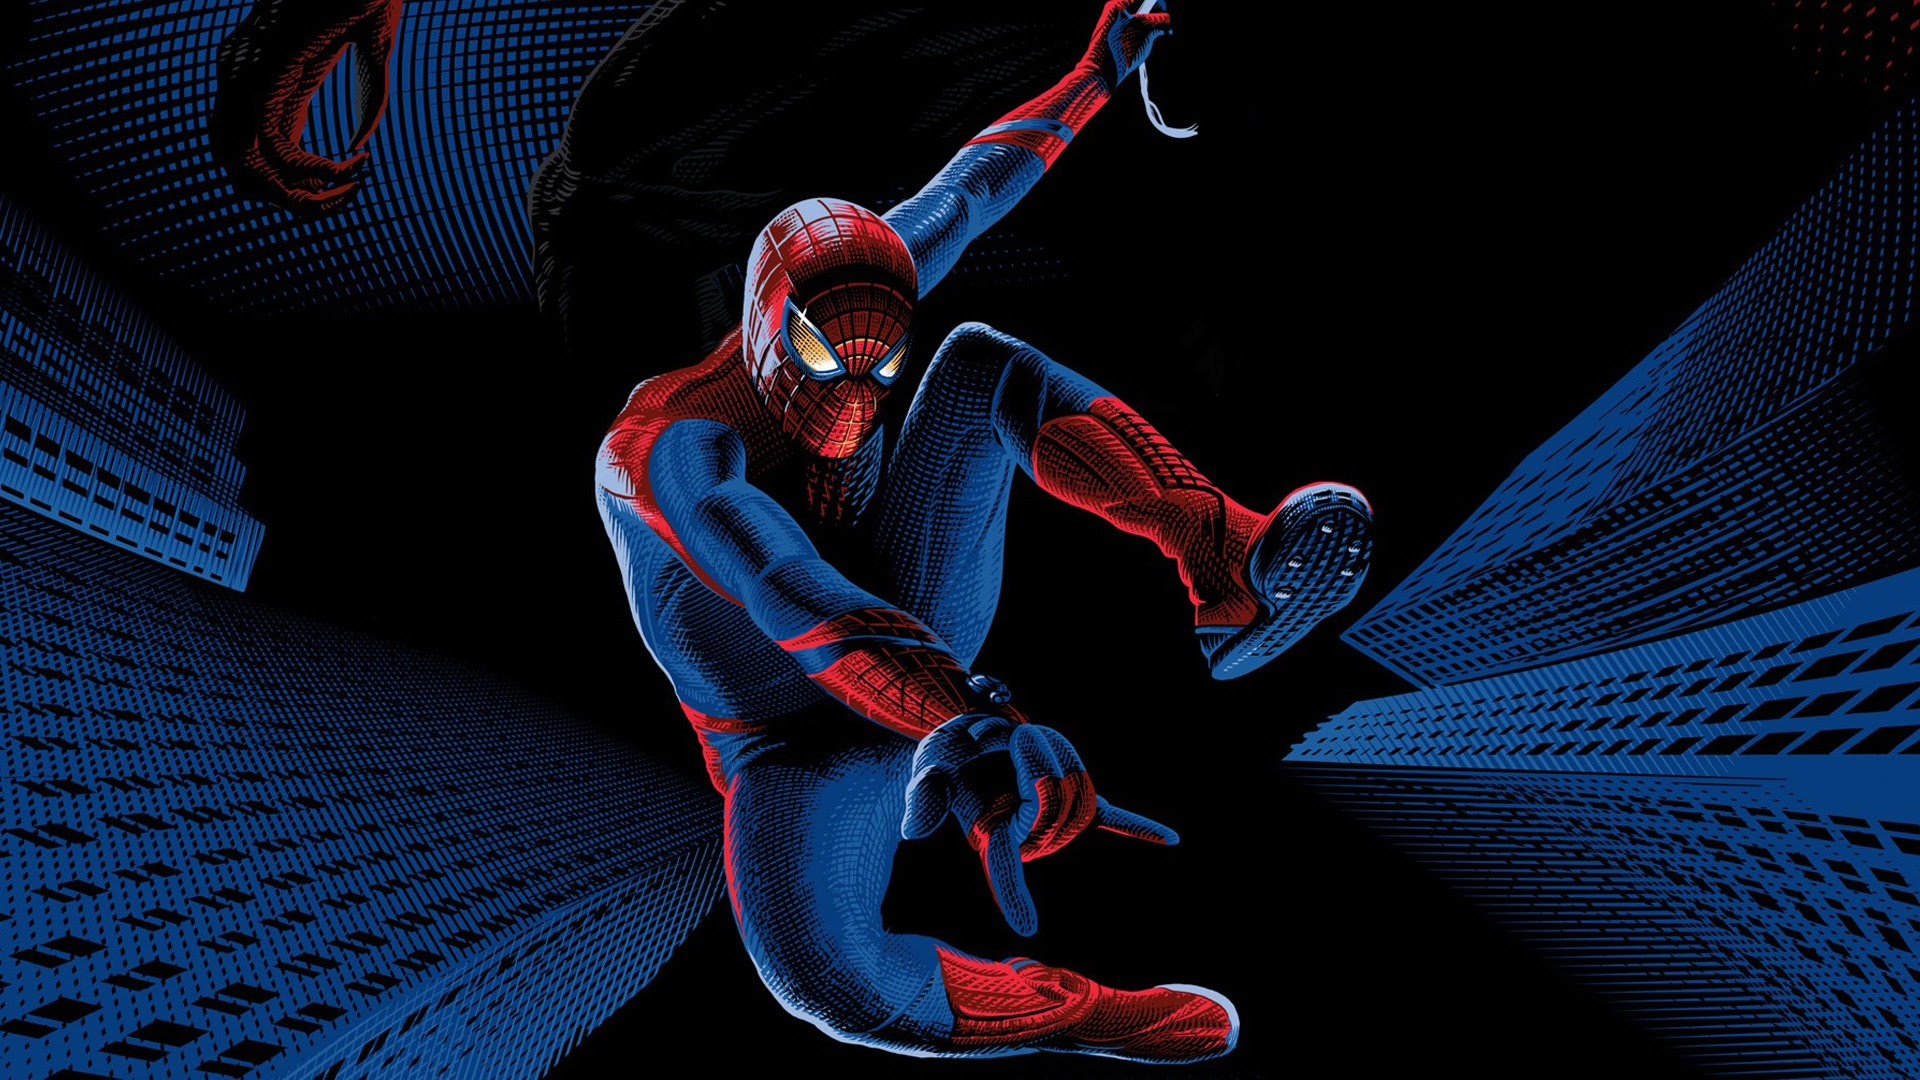 Amazing Spider Man IMAX Wallpapers | HD Wallpapers | ID #11523